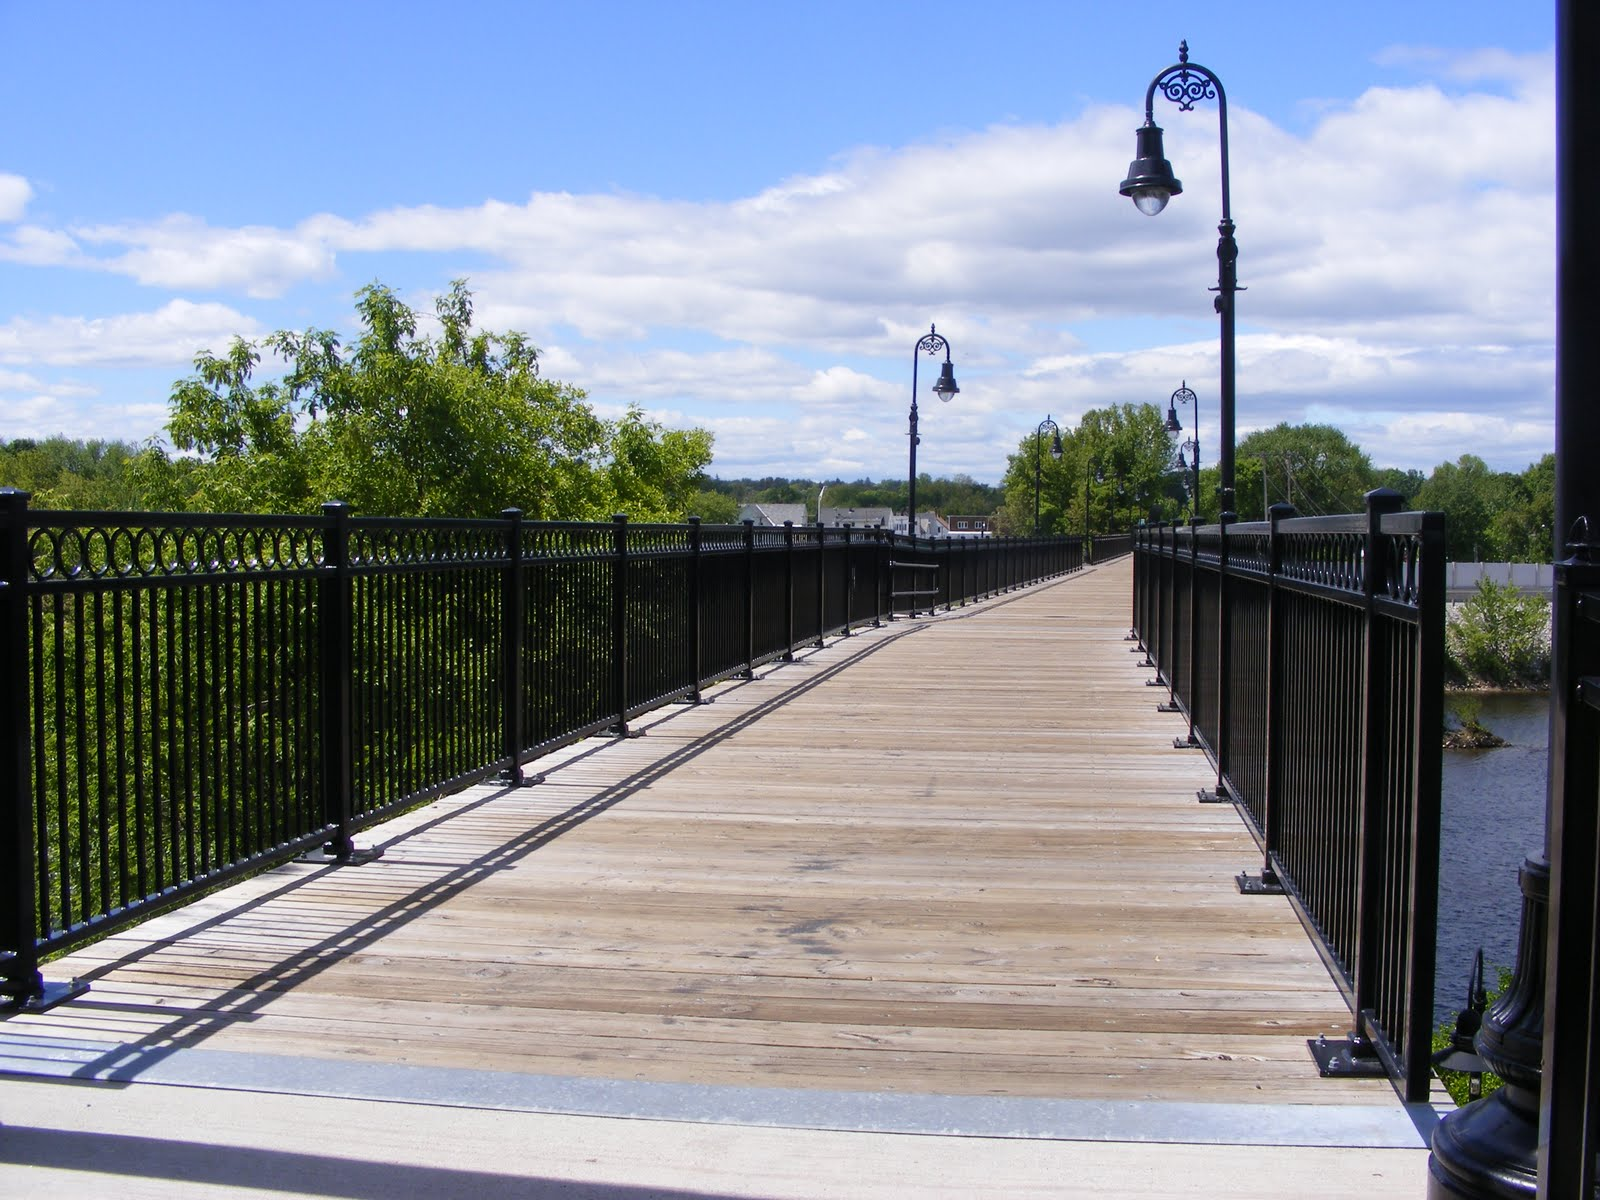 rail trail bridge over Merrimack River in Manchester New Hampshire